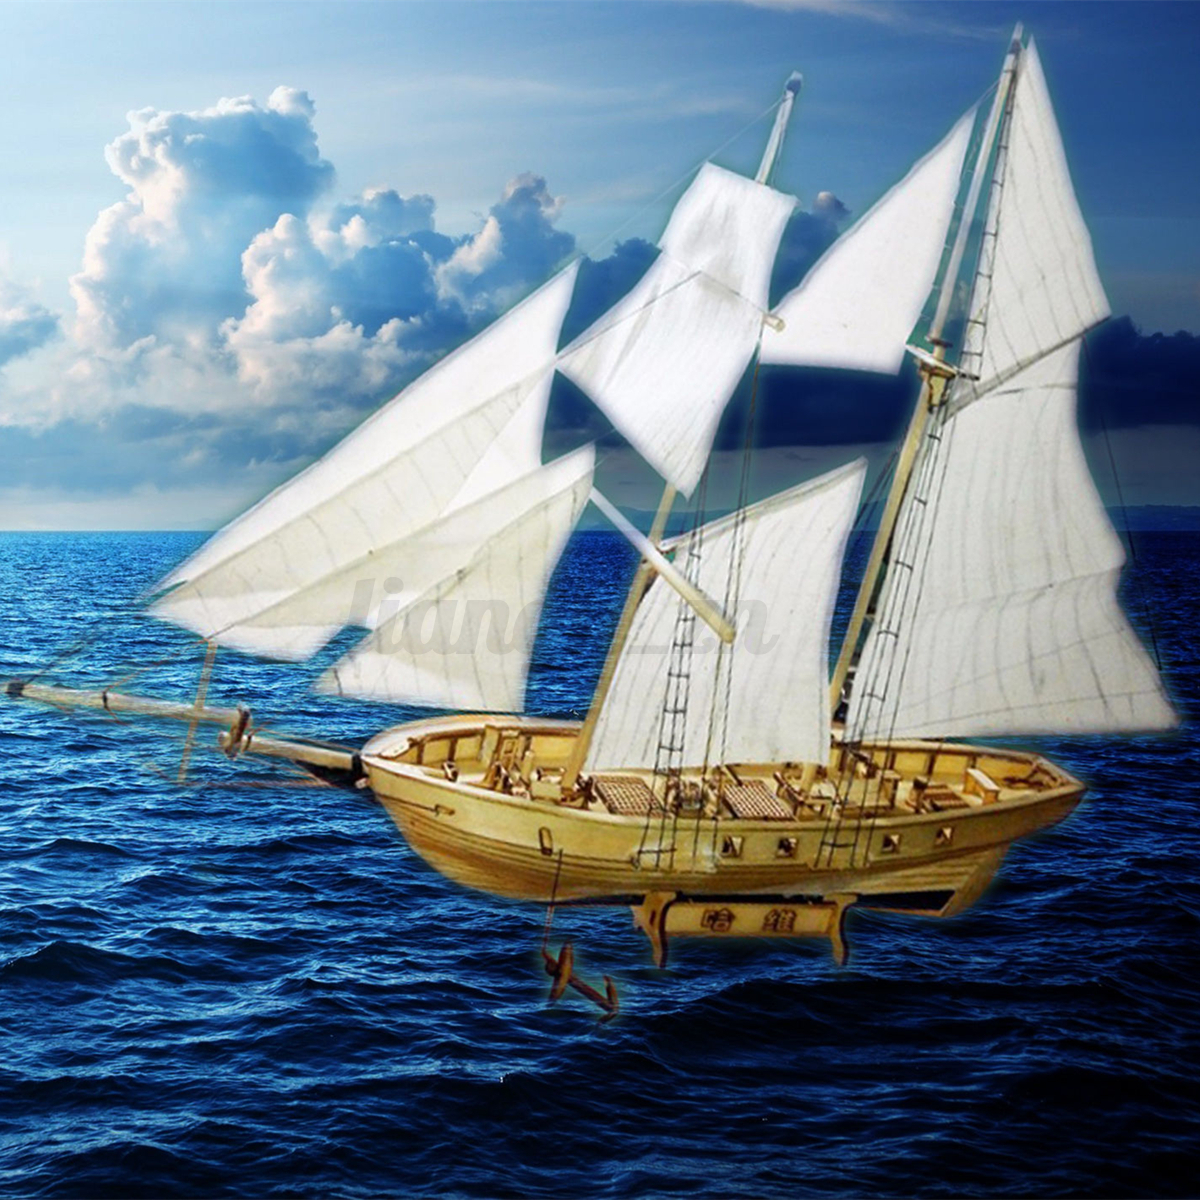 Diy scale wooden small sailboat ship kit home model